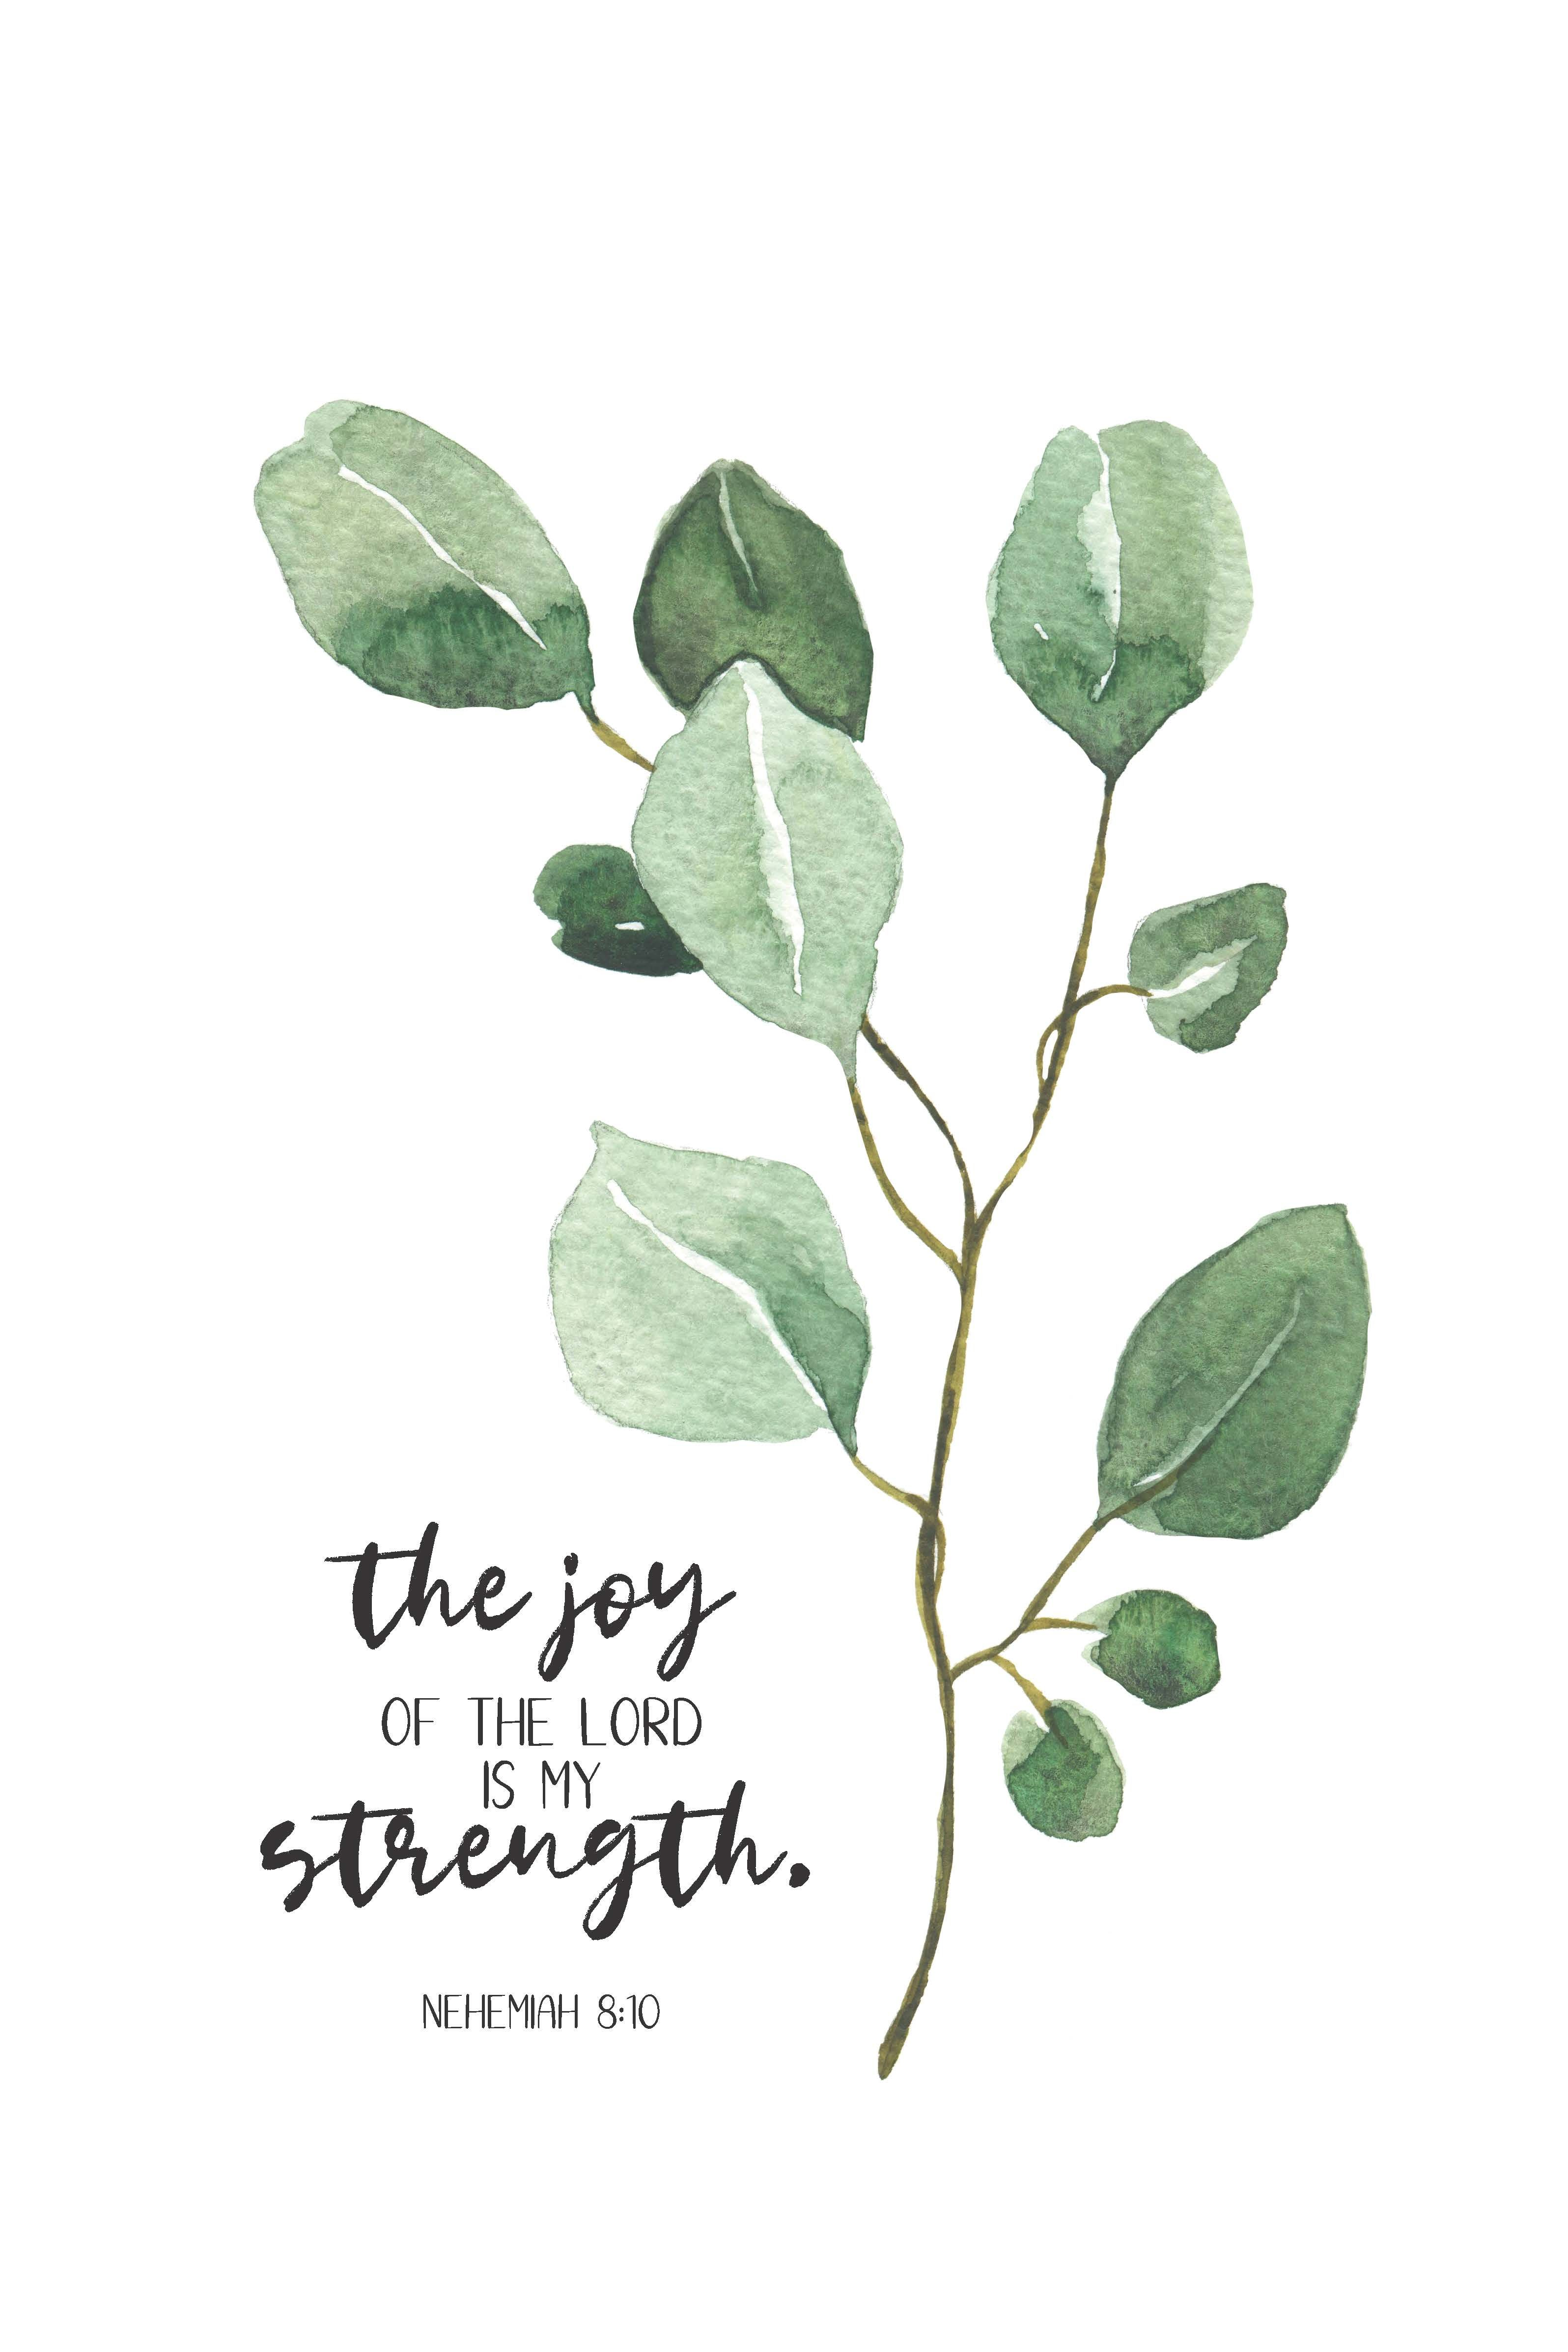 The Joy of The Lord is my Strength | Nehemiah 8:10 | Bible Verse Printable | Watercolor Bible Verse